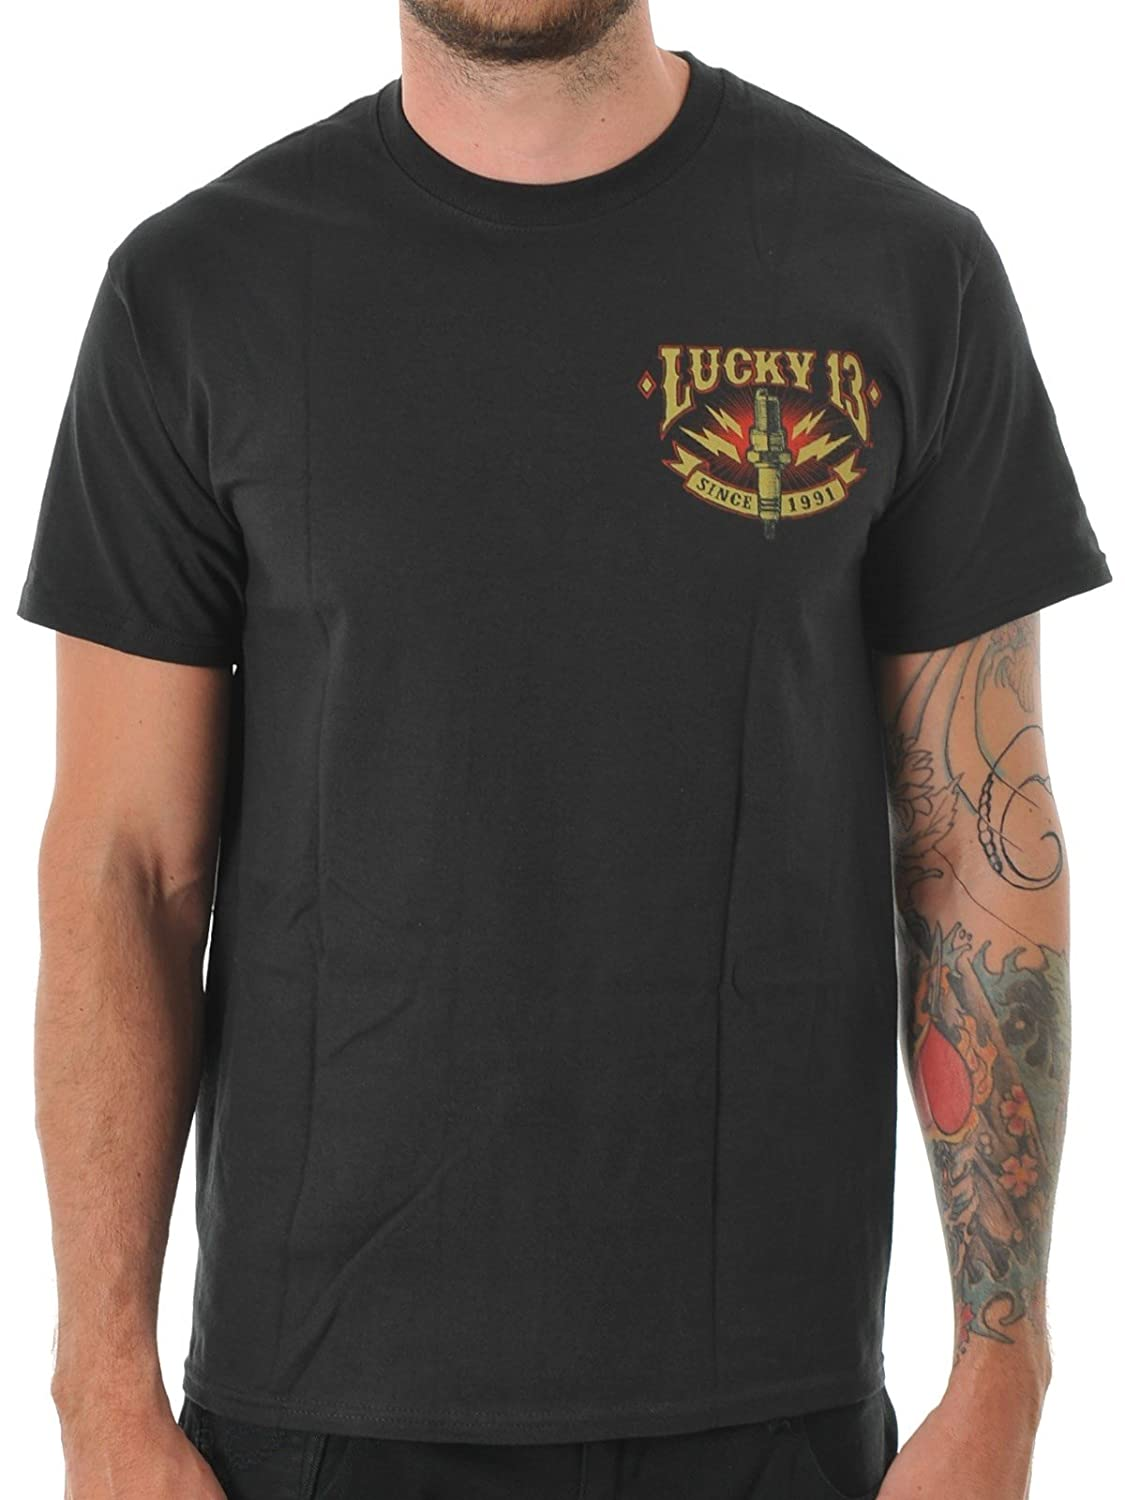 Lucky 13 Black Amped T-Shirt